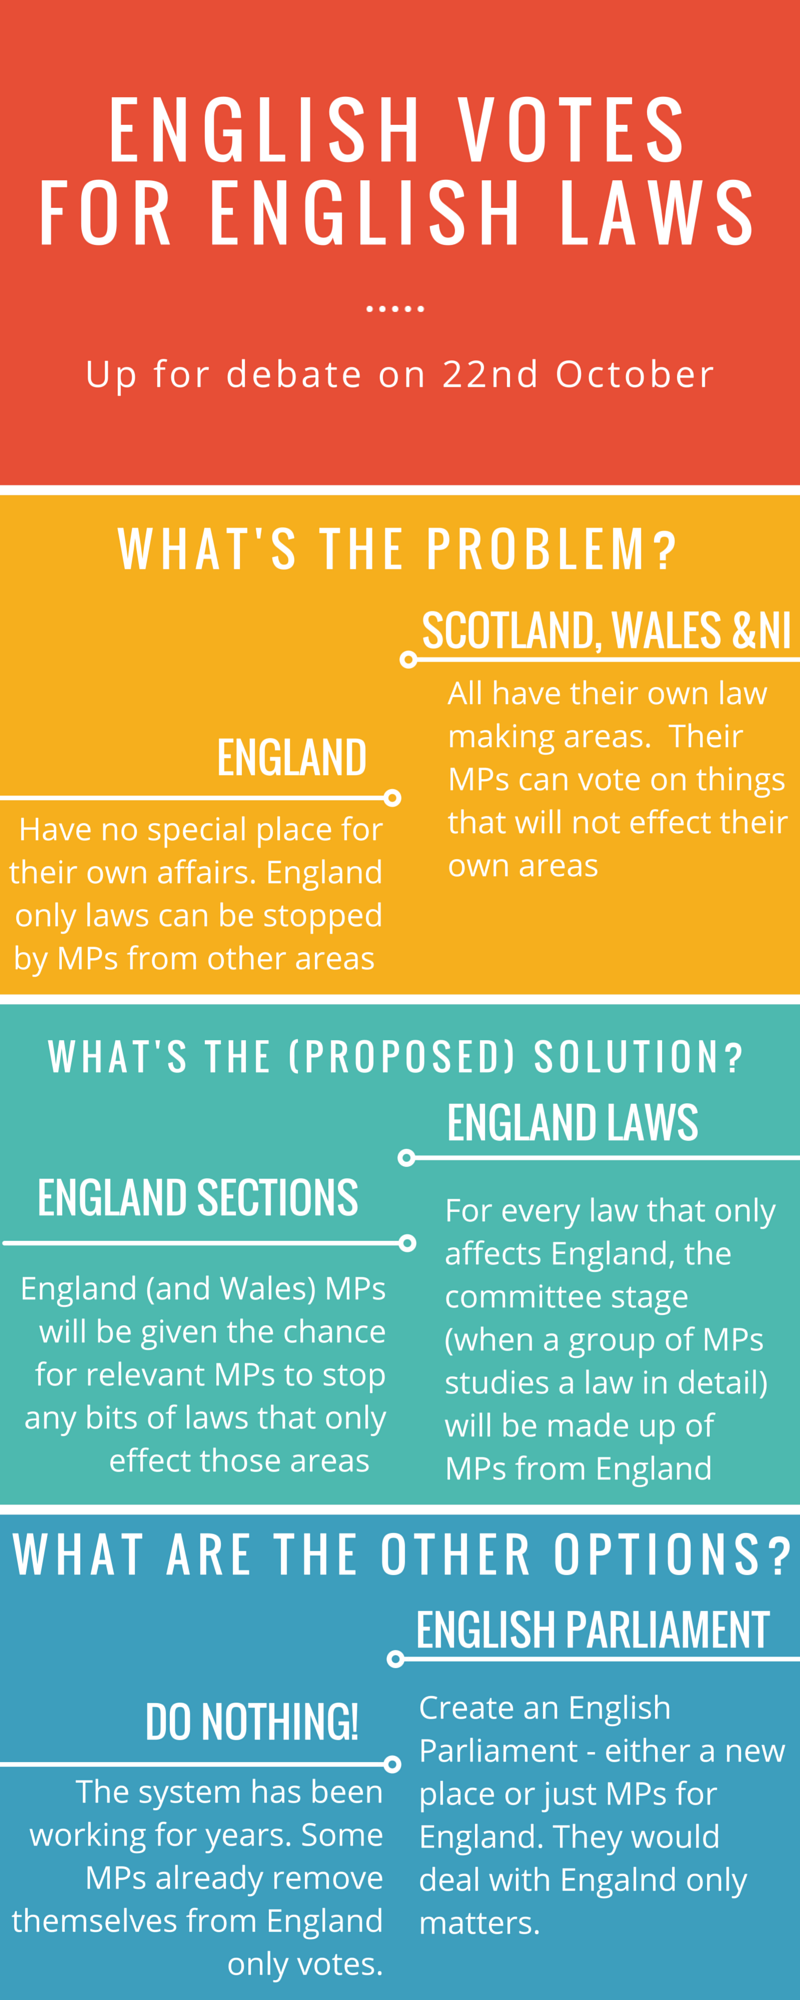 What is English Votes for English Laws